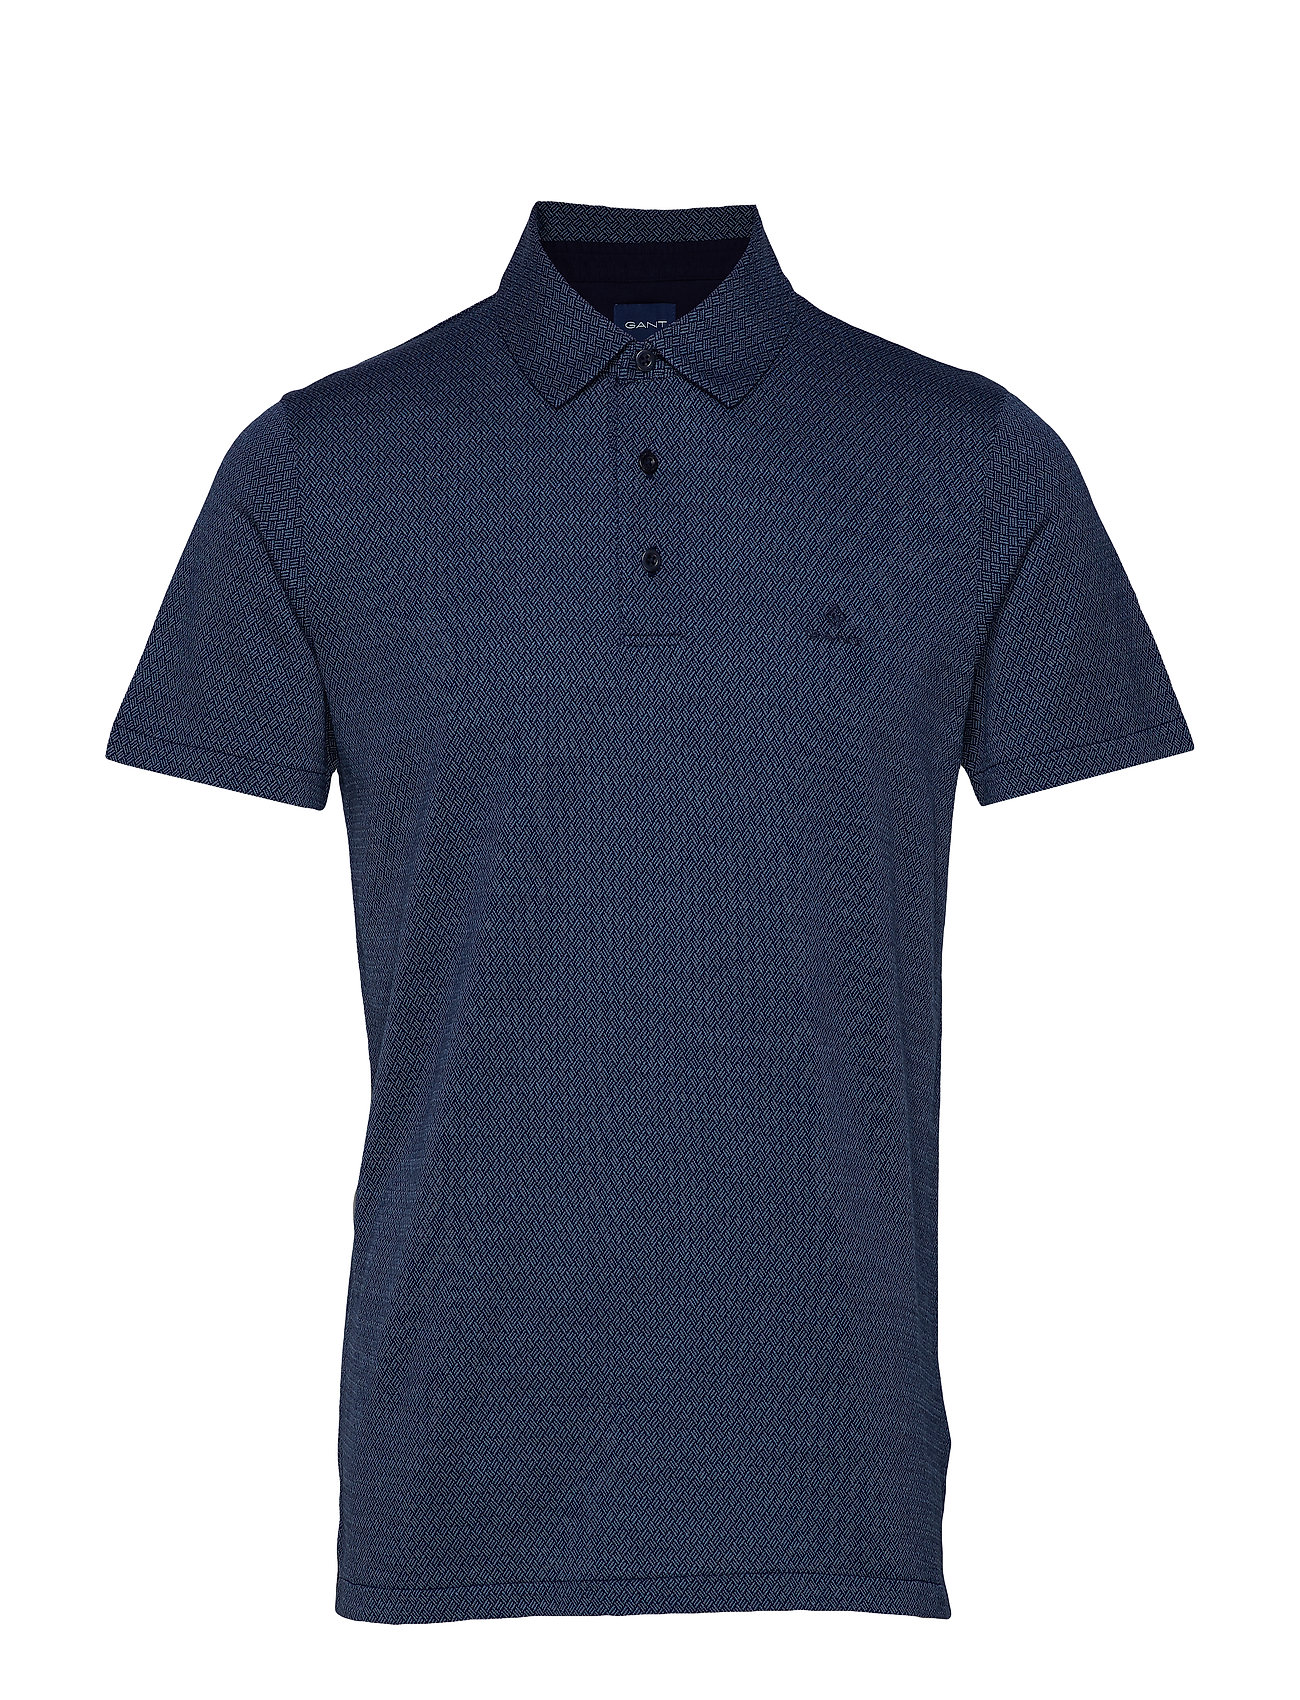 GANT D1. JACQUARD SS RUGGER - EVENING BLUE